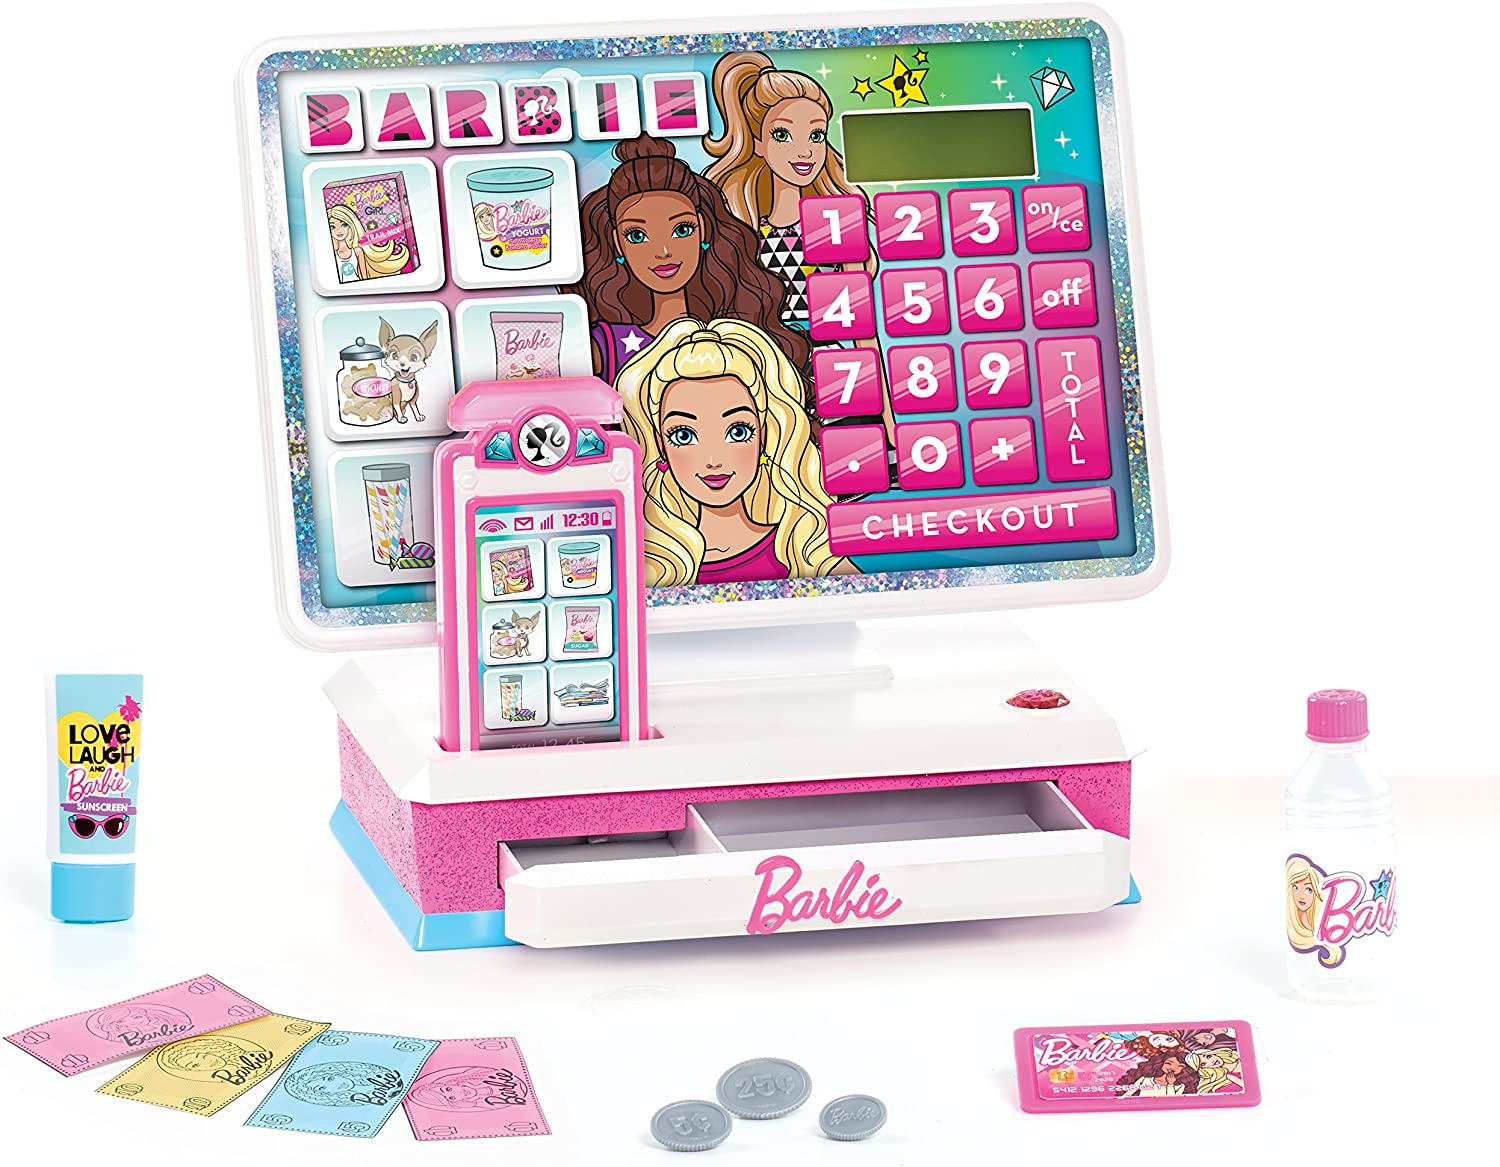 Barbie Large Cash Register! Down to .46 at Amazon!